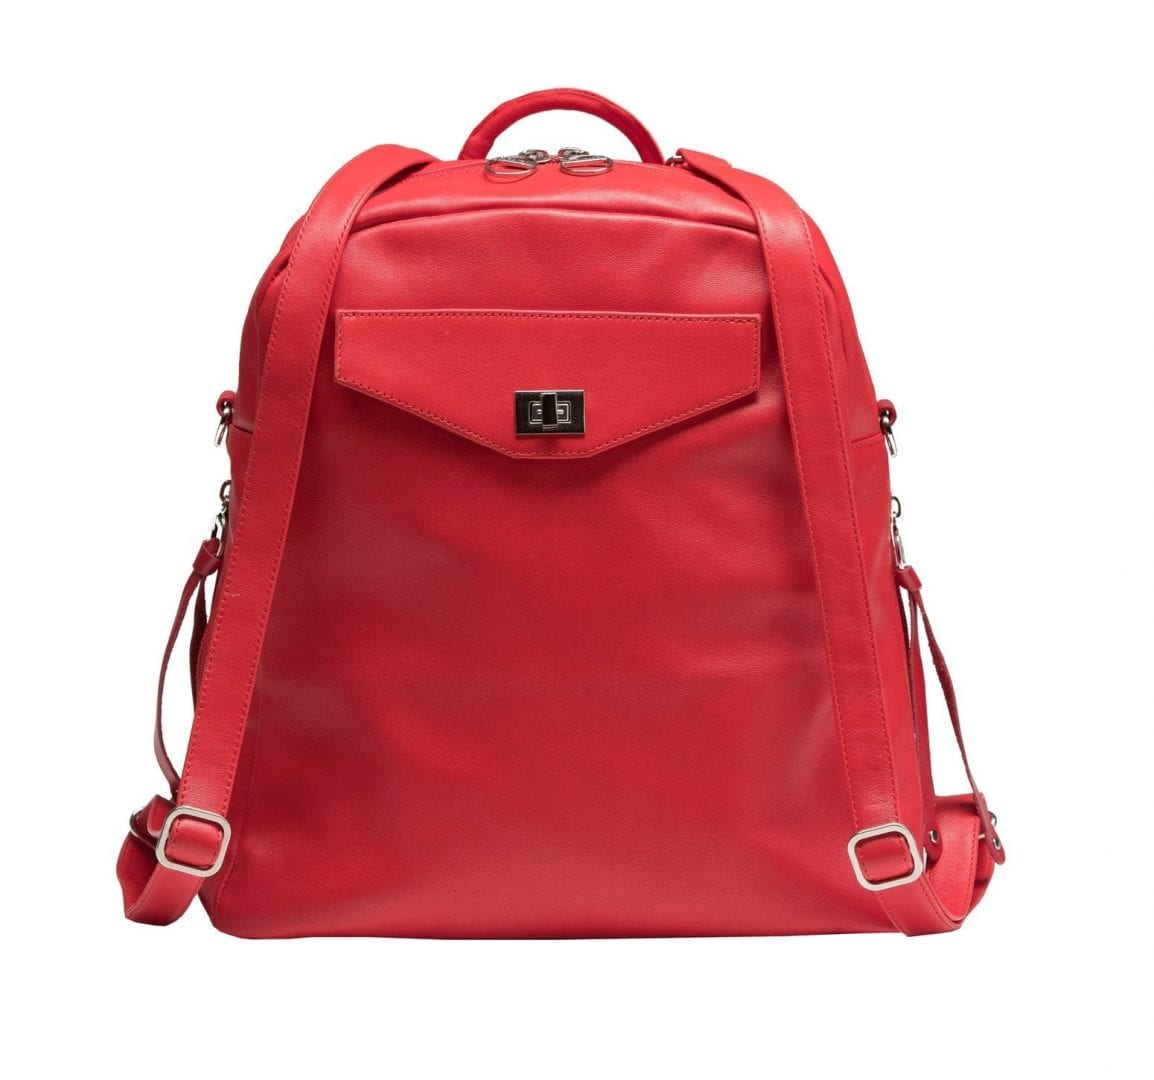 Three-Way Red Leather Shoulder Bag